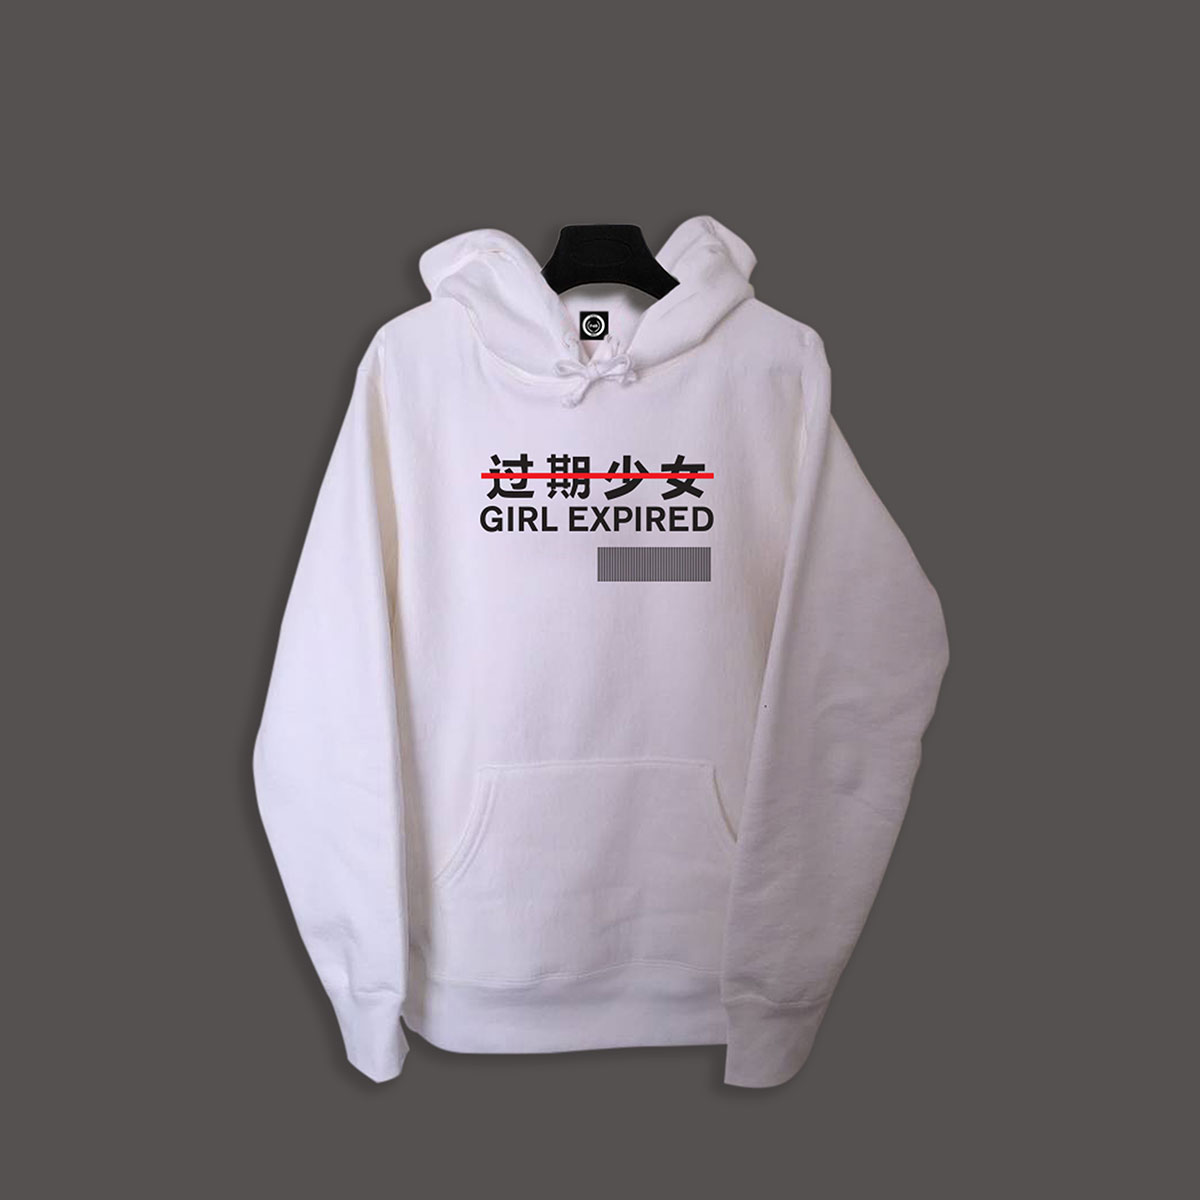 Girl Expired Pullover Hoodie - White